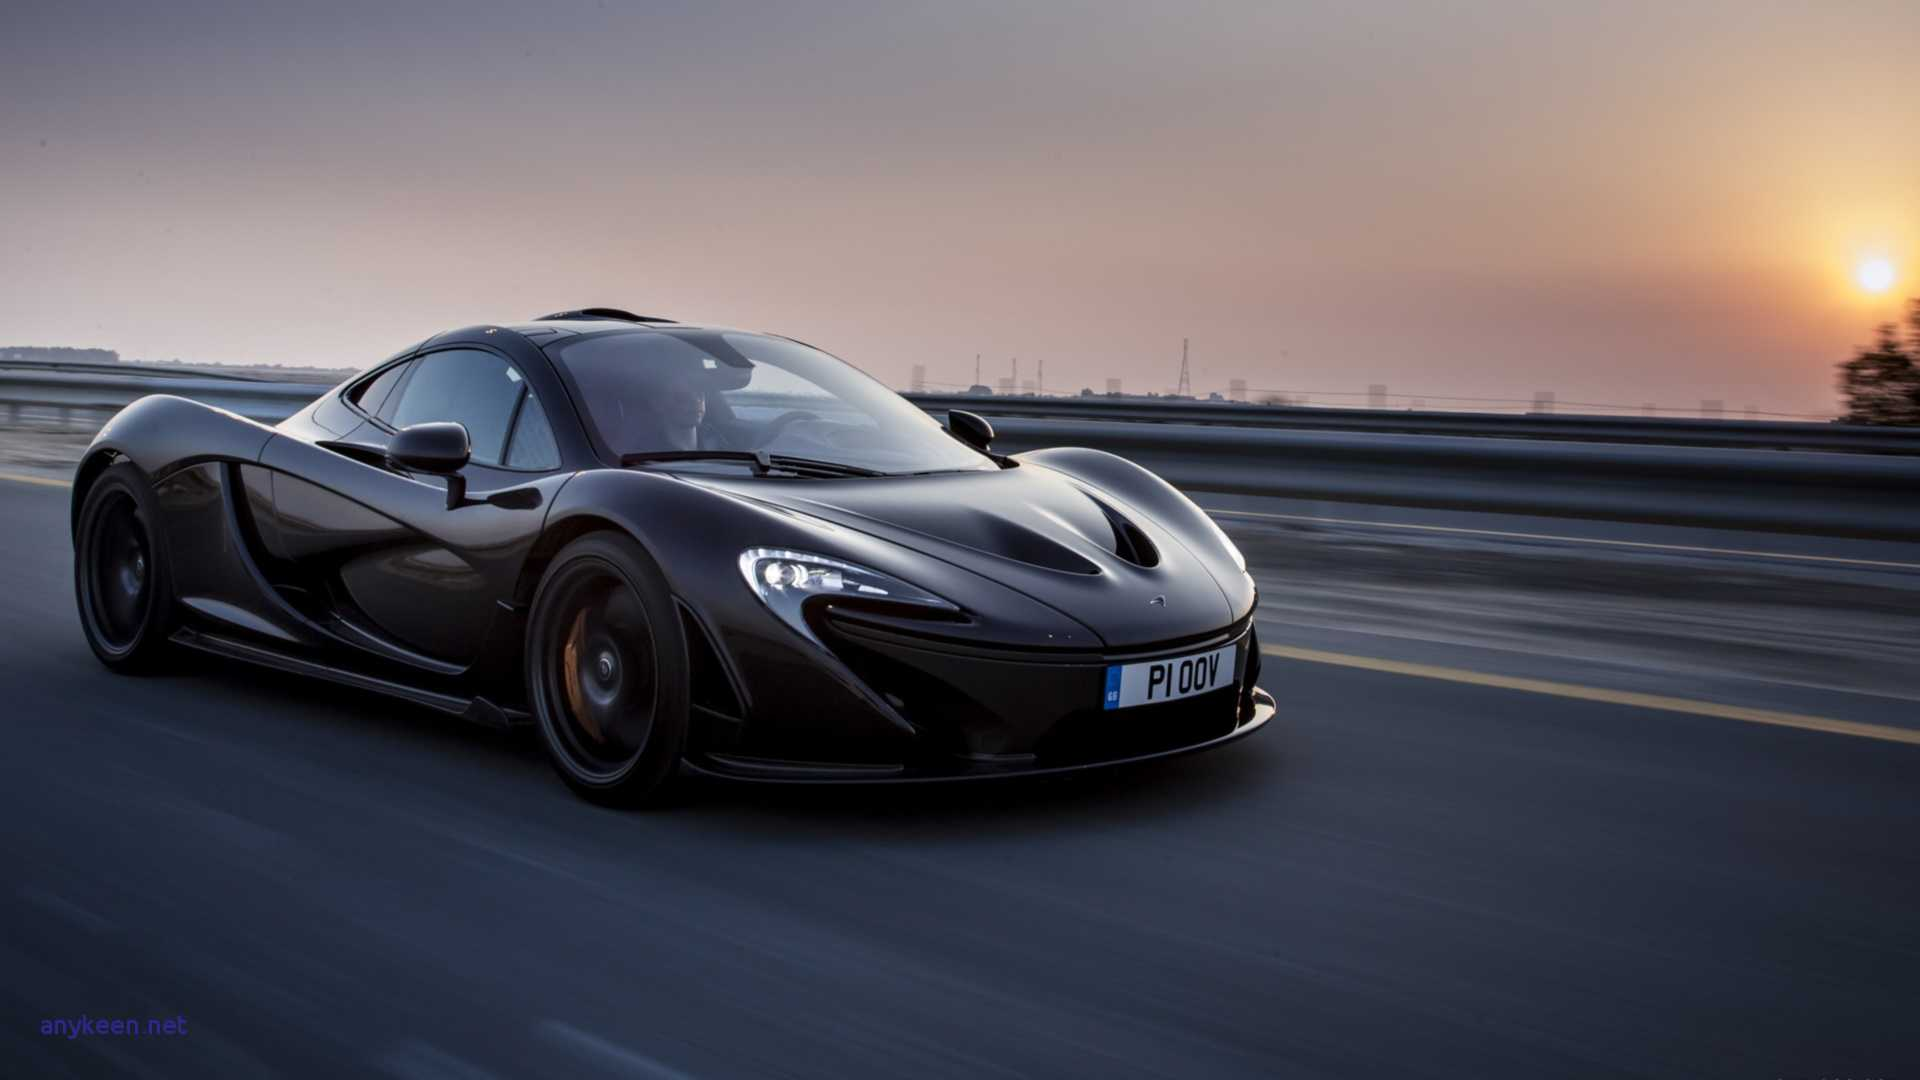 Mclaren P1 Full Hd Wallpapers and Backgrounds Image Awesome Of Car